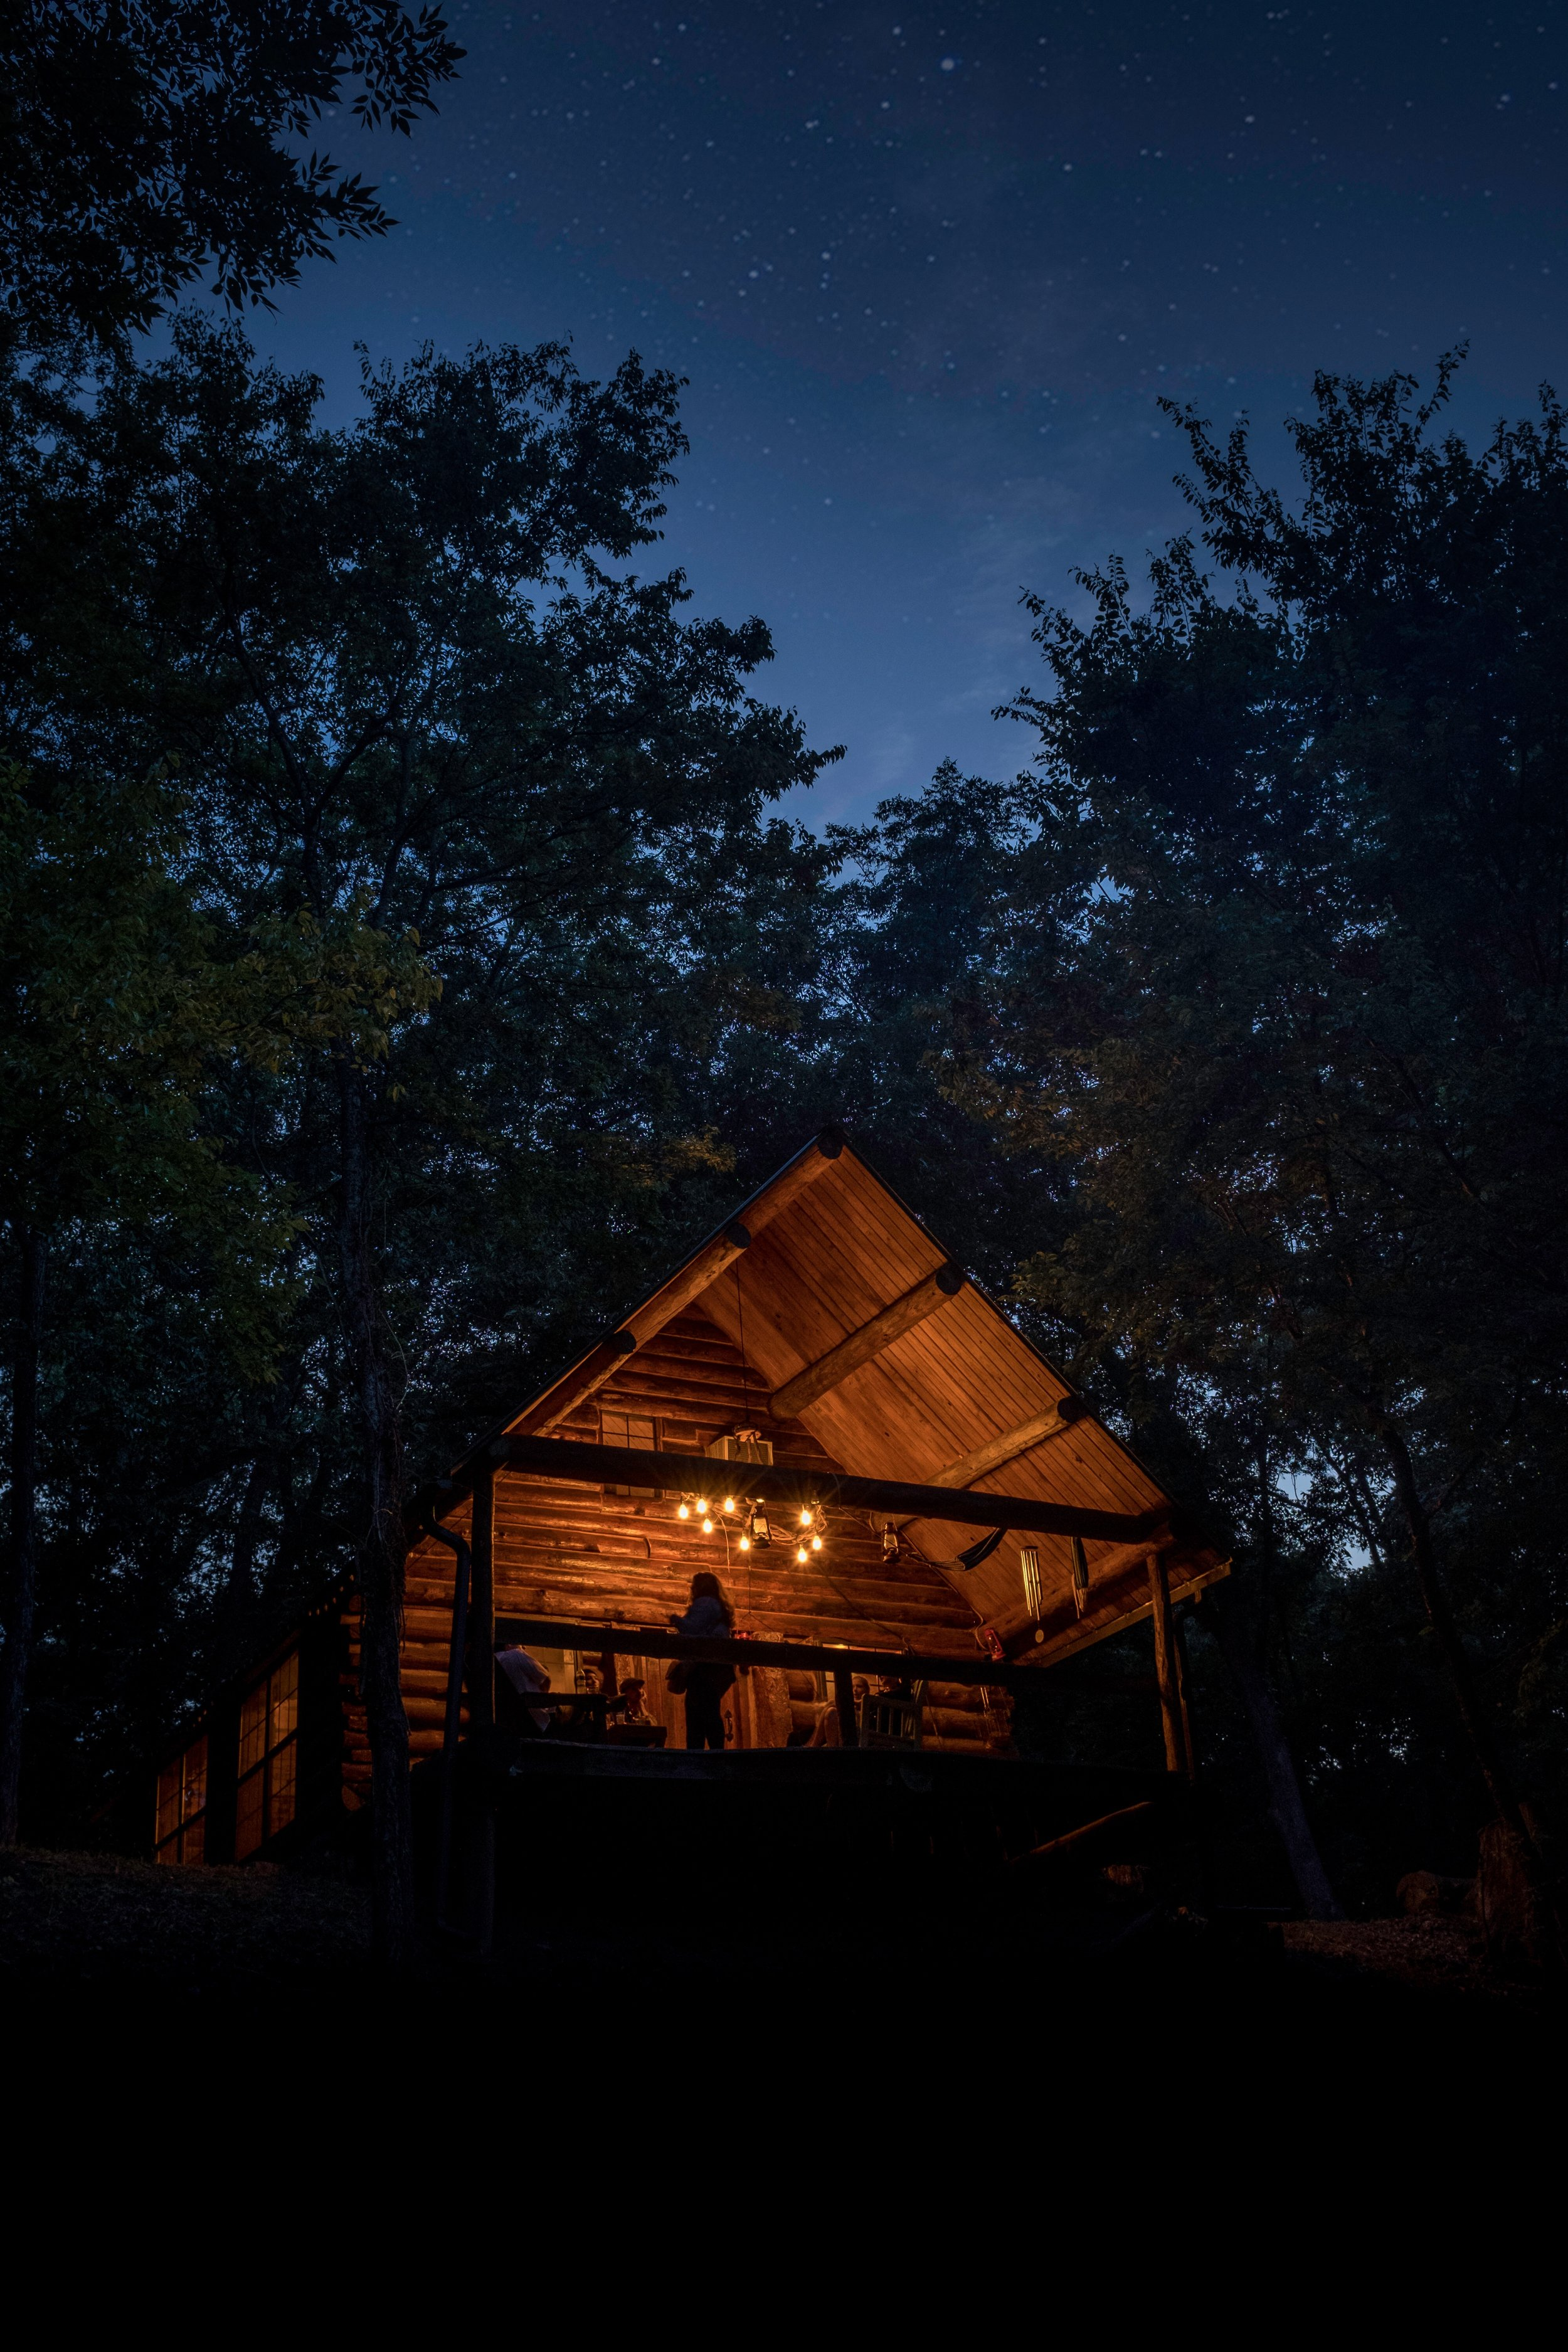 With the help of our friends and family we built a cabin, with the help of the community we're building our brewery - It all started with a cabin in the woods